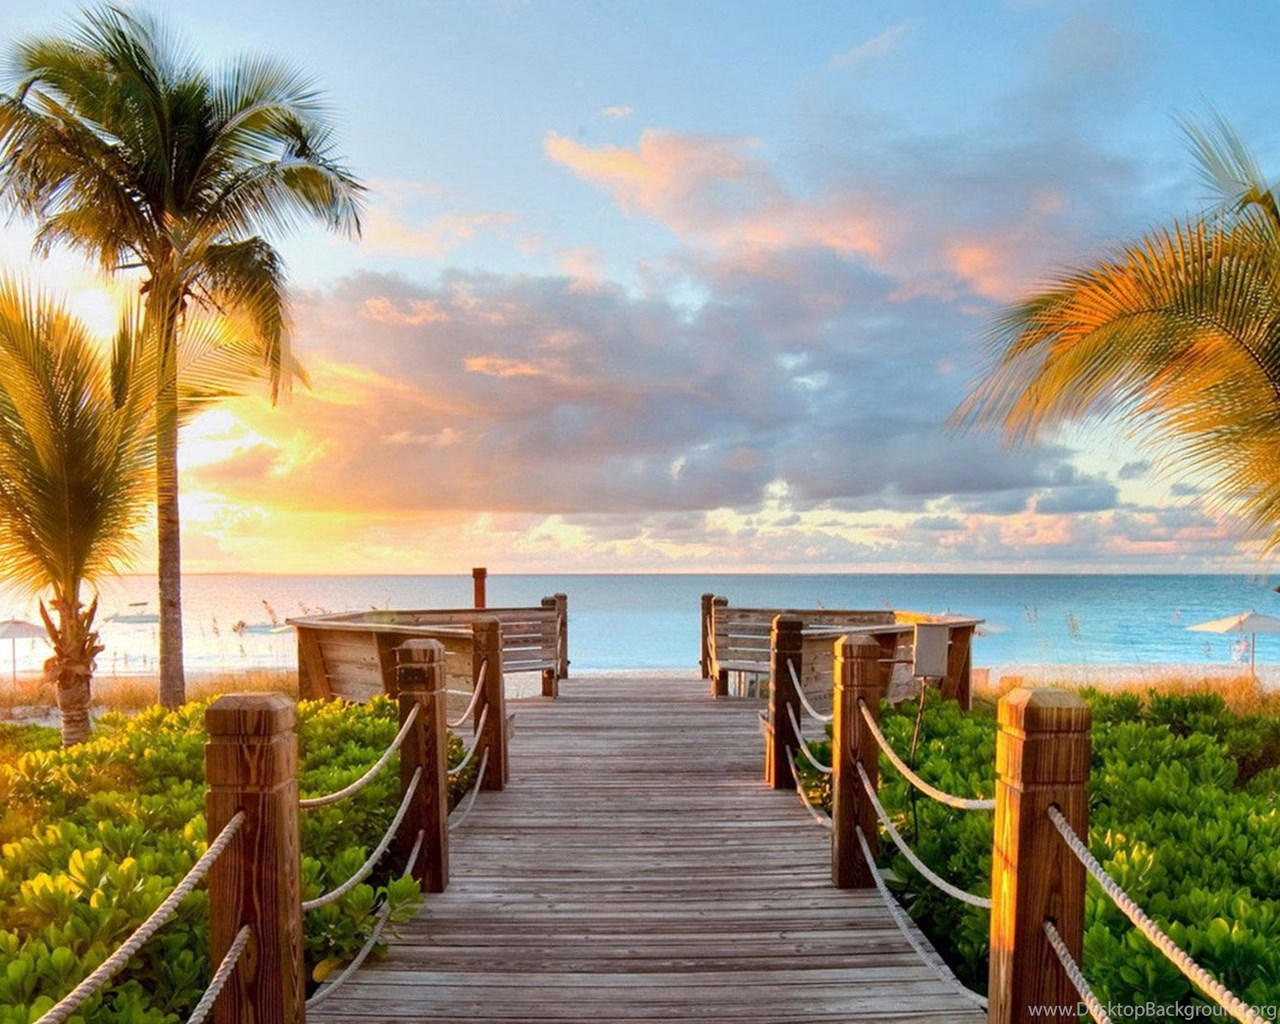 Download Beach Wallpaper Ipad Gallery: Tropical Summer Beach And View Of The Sea Bridge